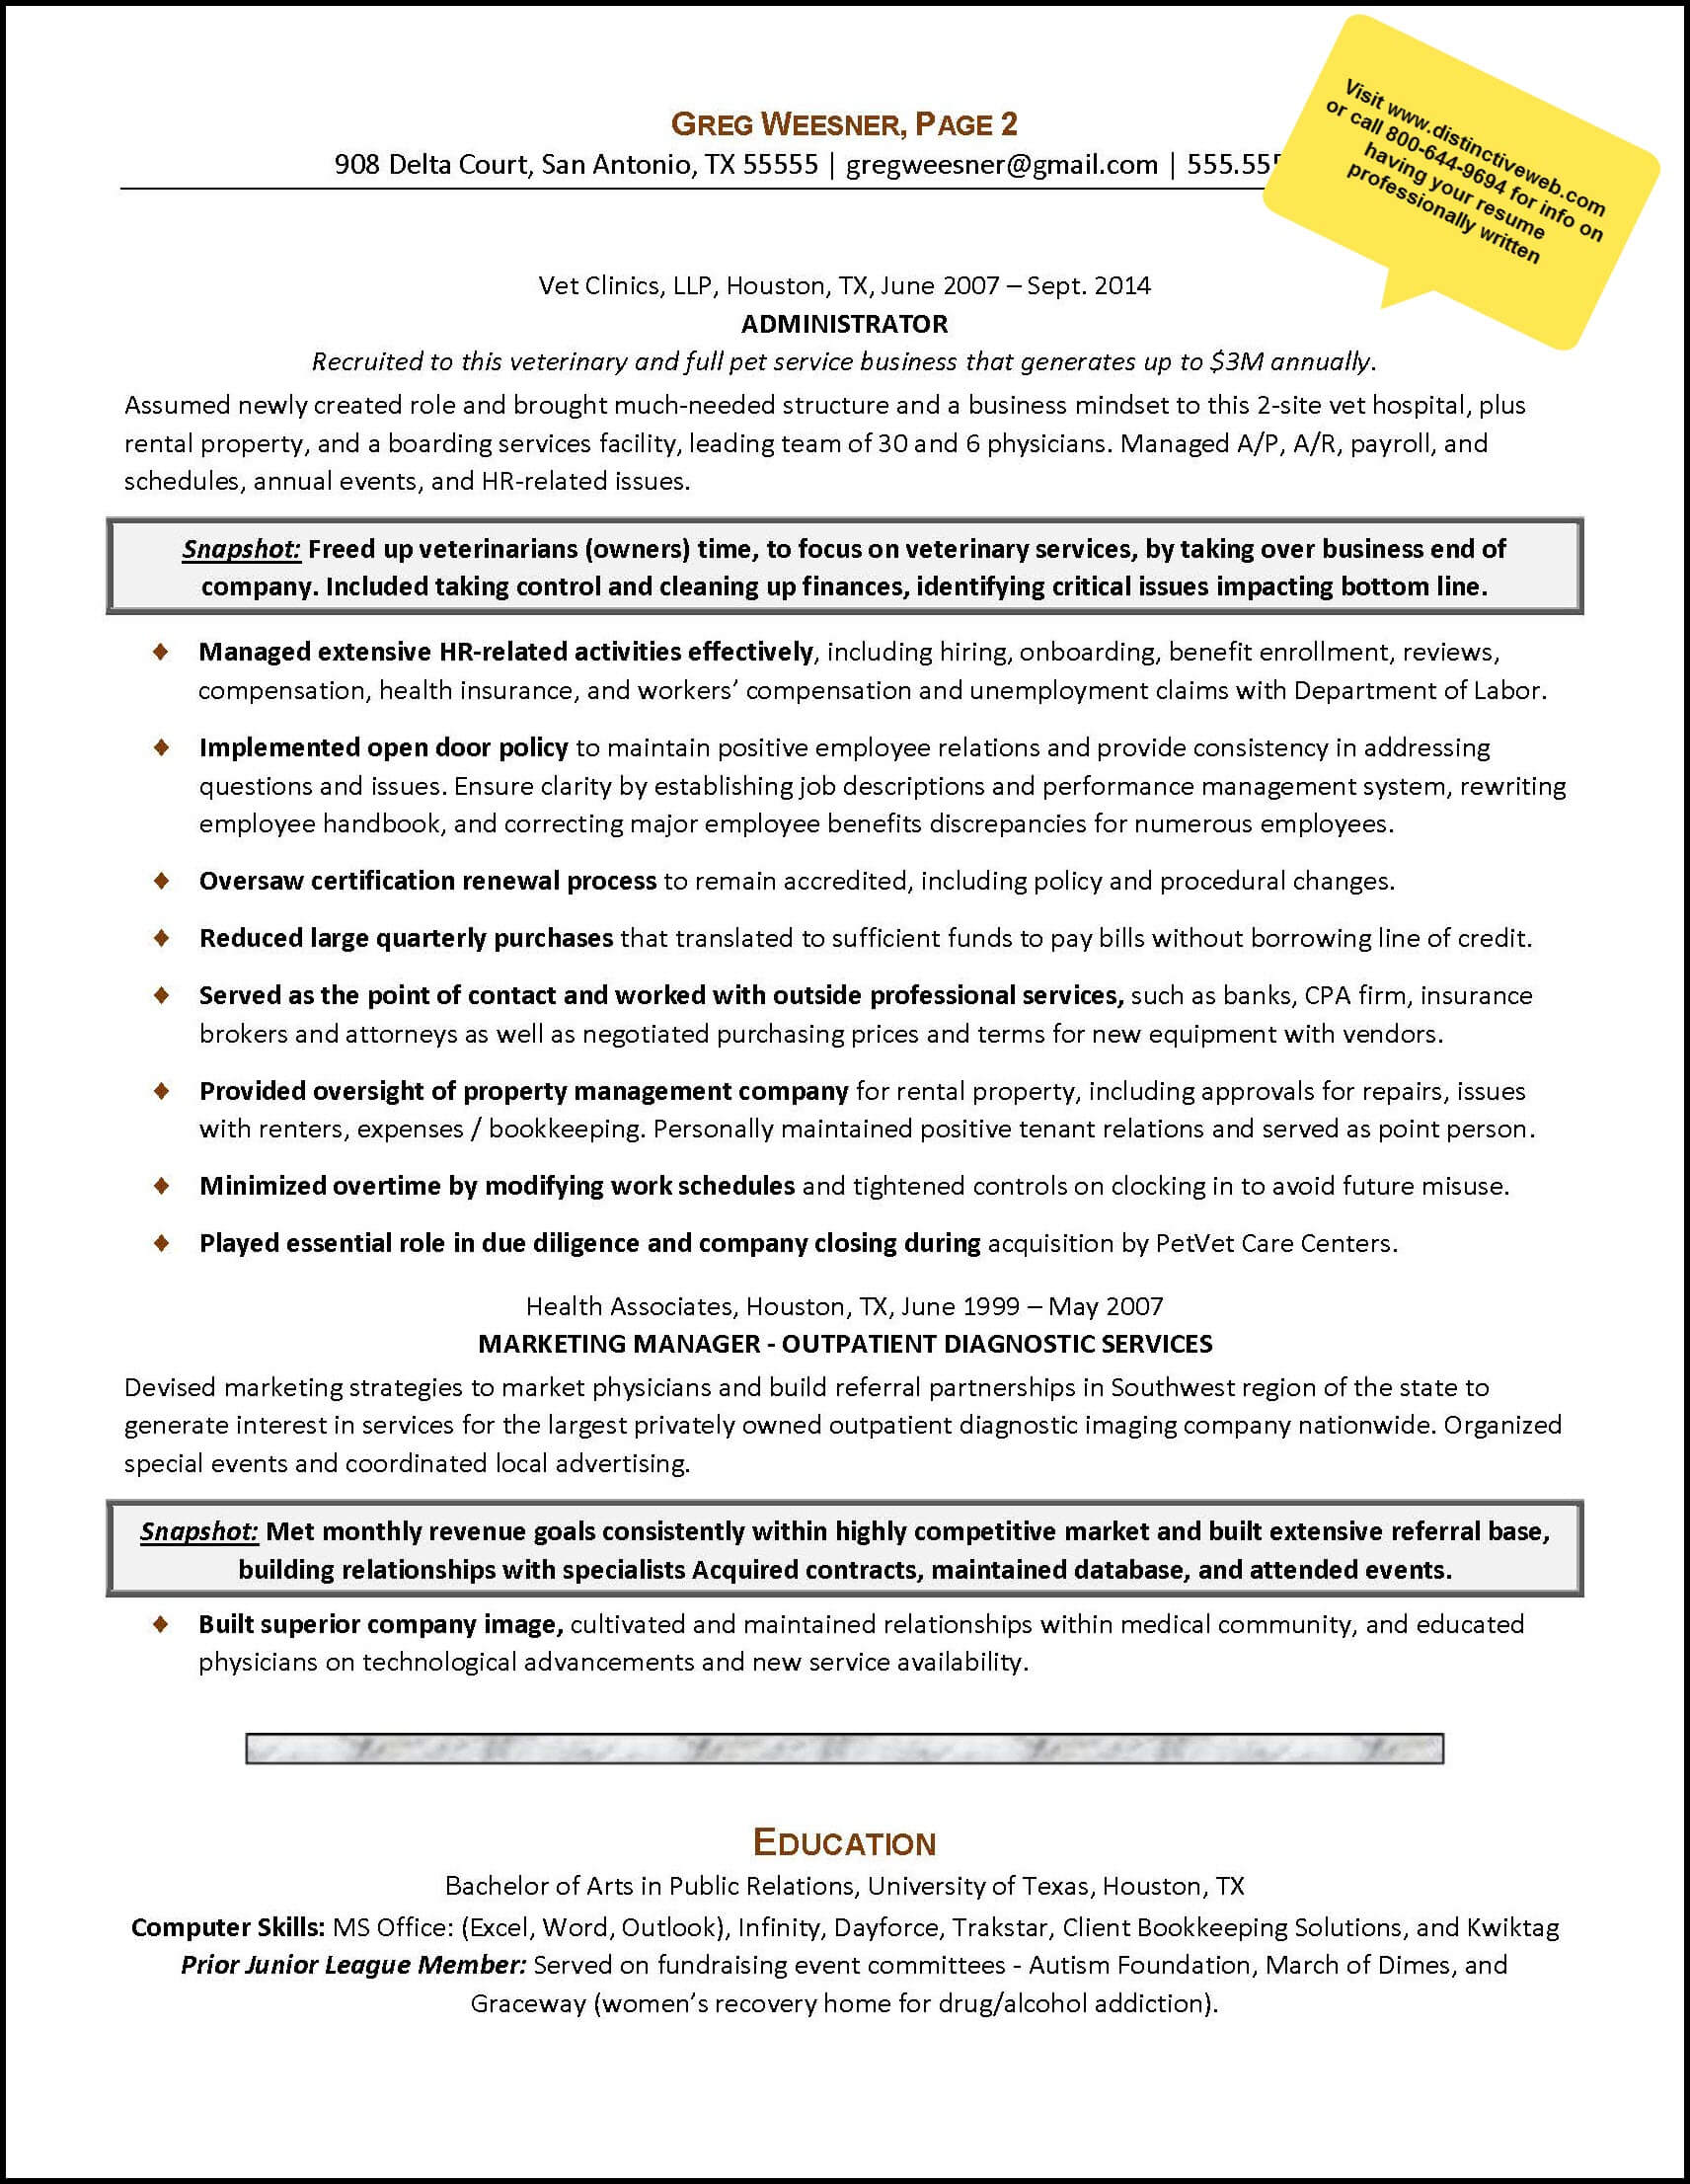 sample career change resume for an administrative services manager page 2 - Career Change Resume Template